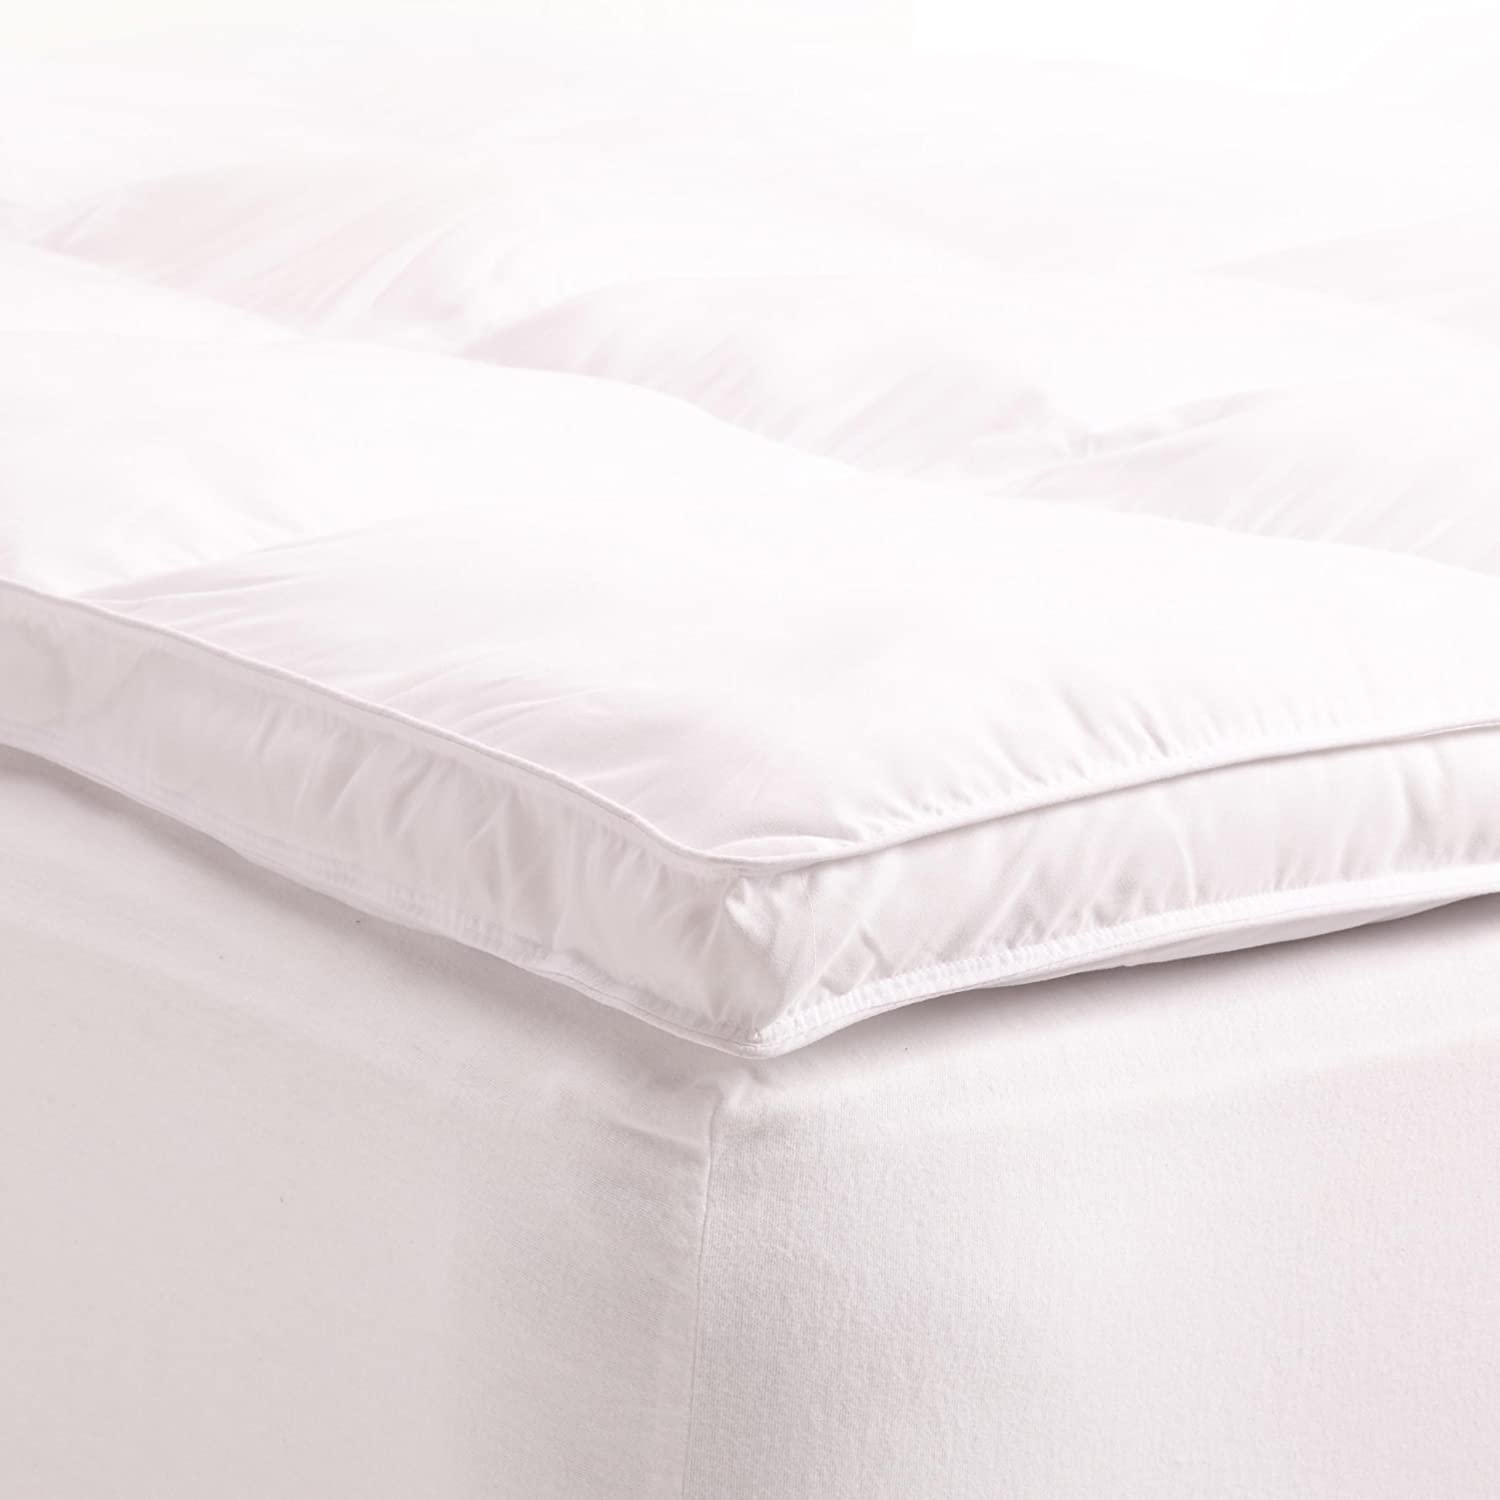 top prestige box mattresses mattress beds topper pillow and